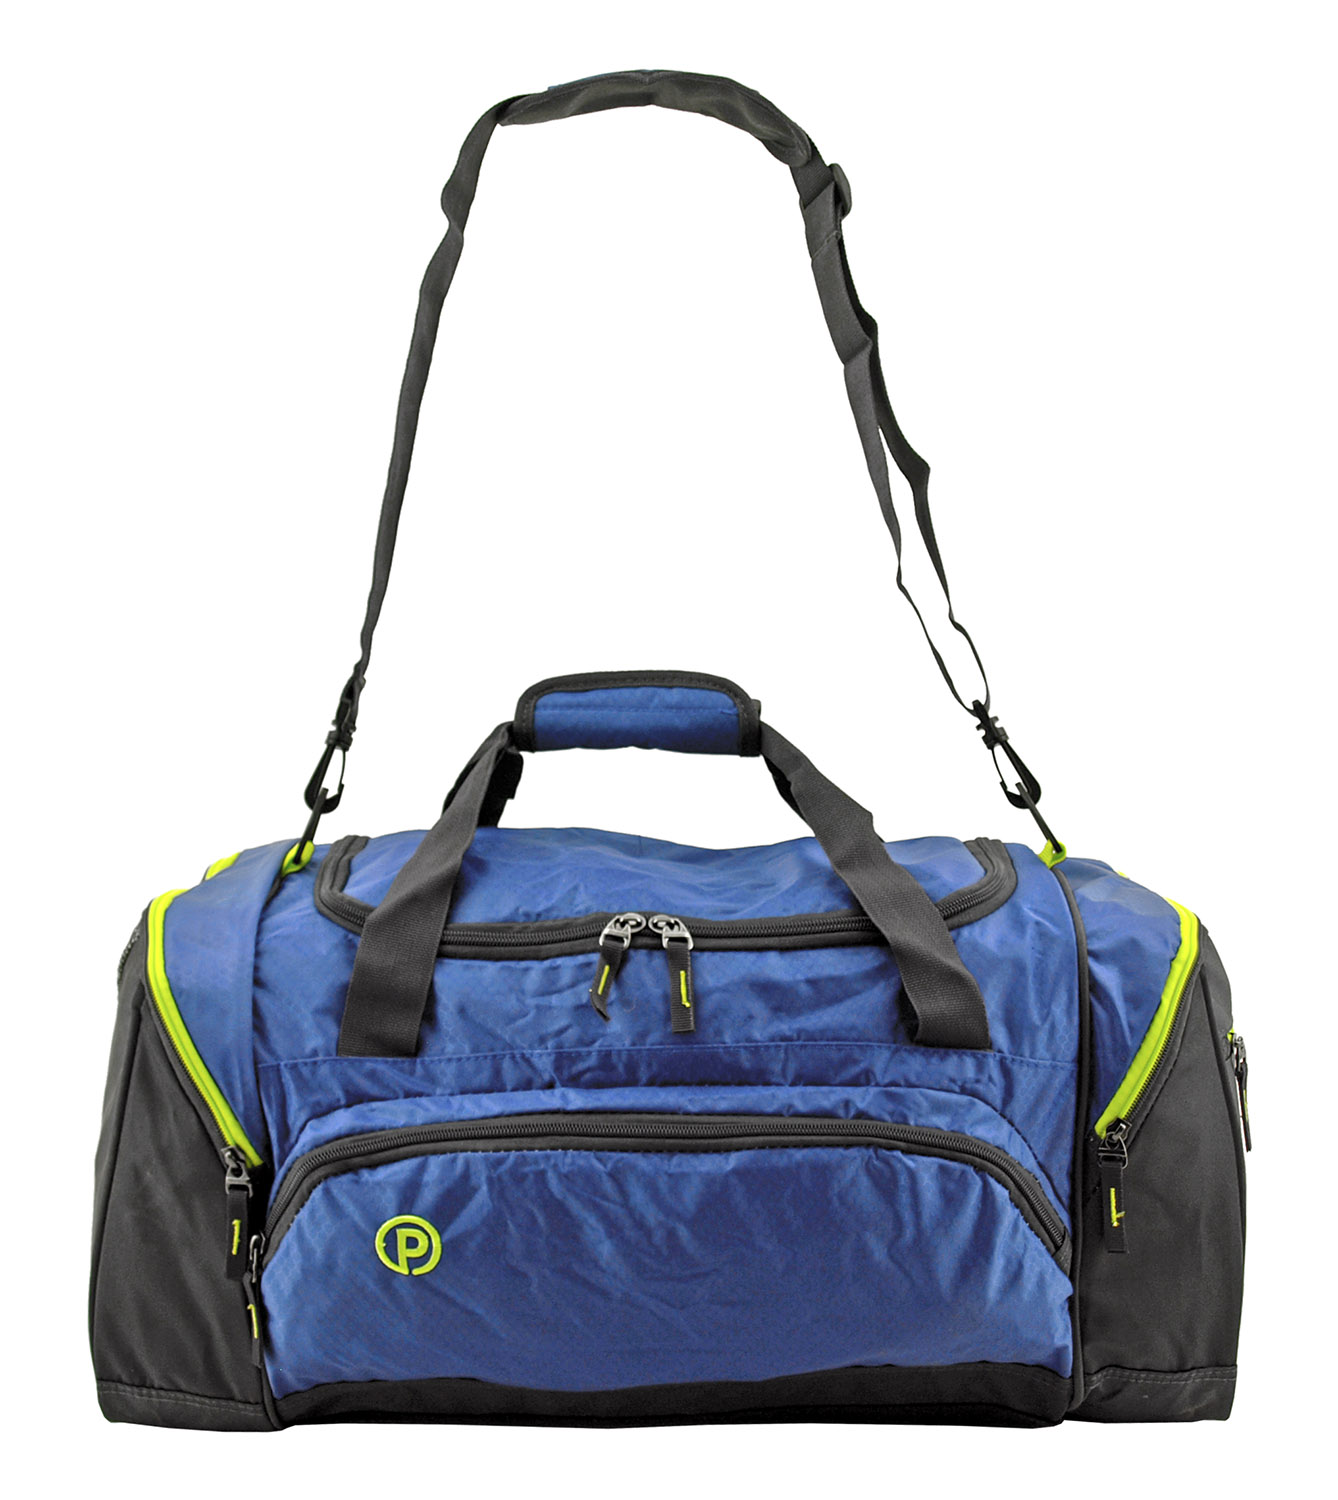 24 in Protégé Carry On Travel Duffel Bag - Grey and Blue